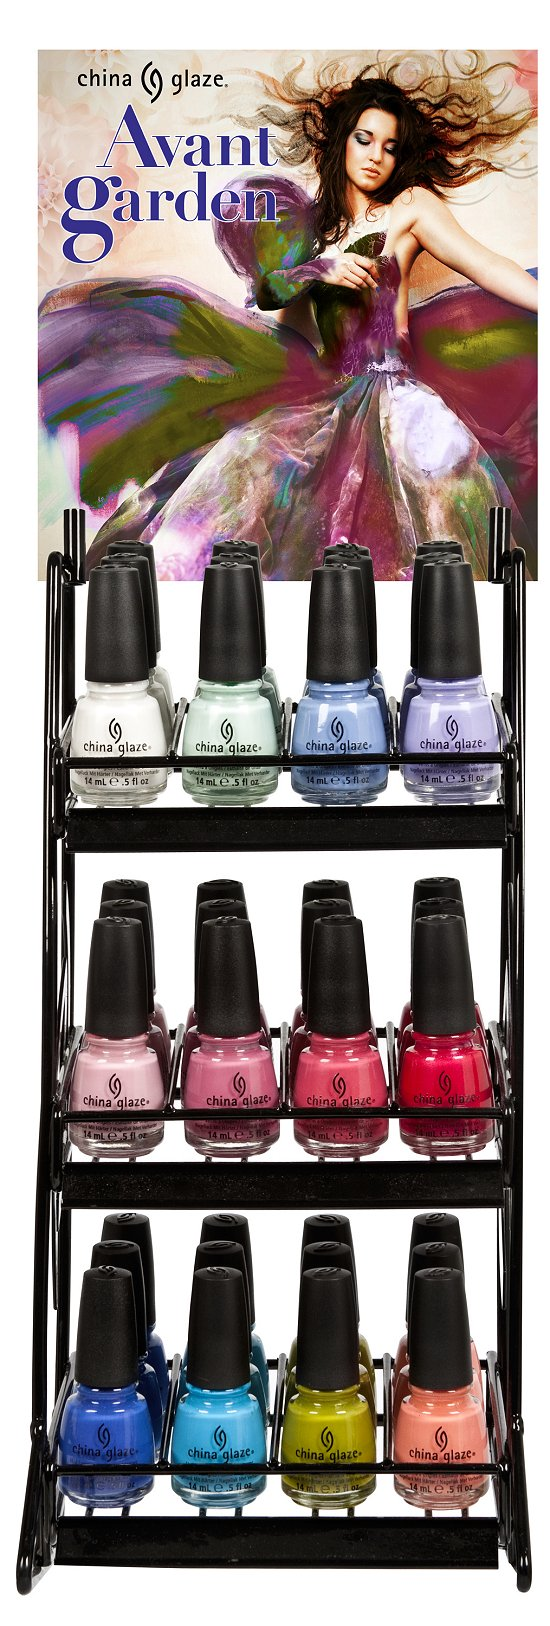 China Glaze Avant Garden Collection Press Release & Promo Pictures 36-Piece Set